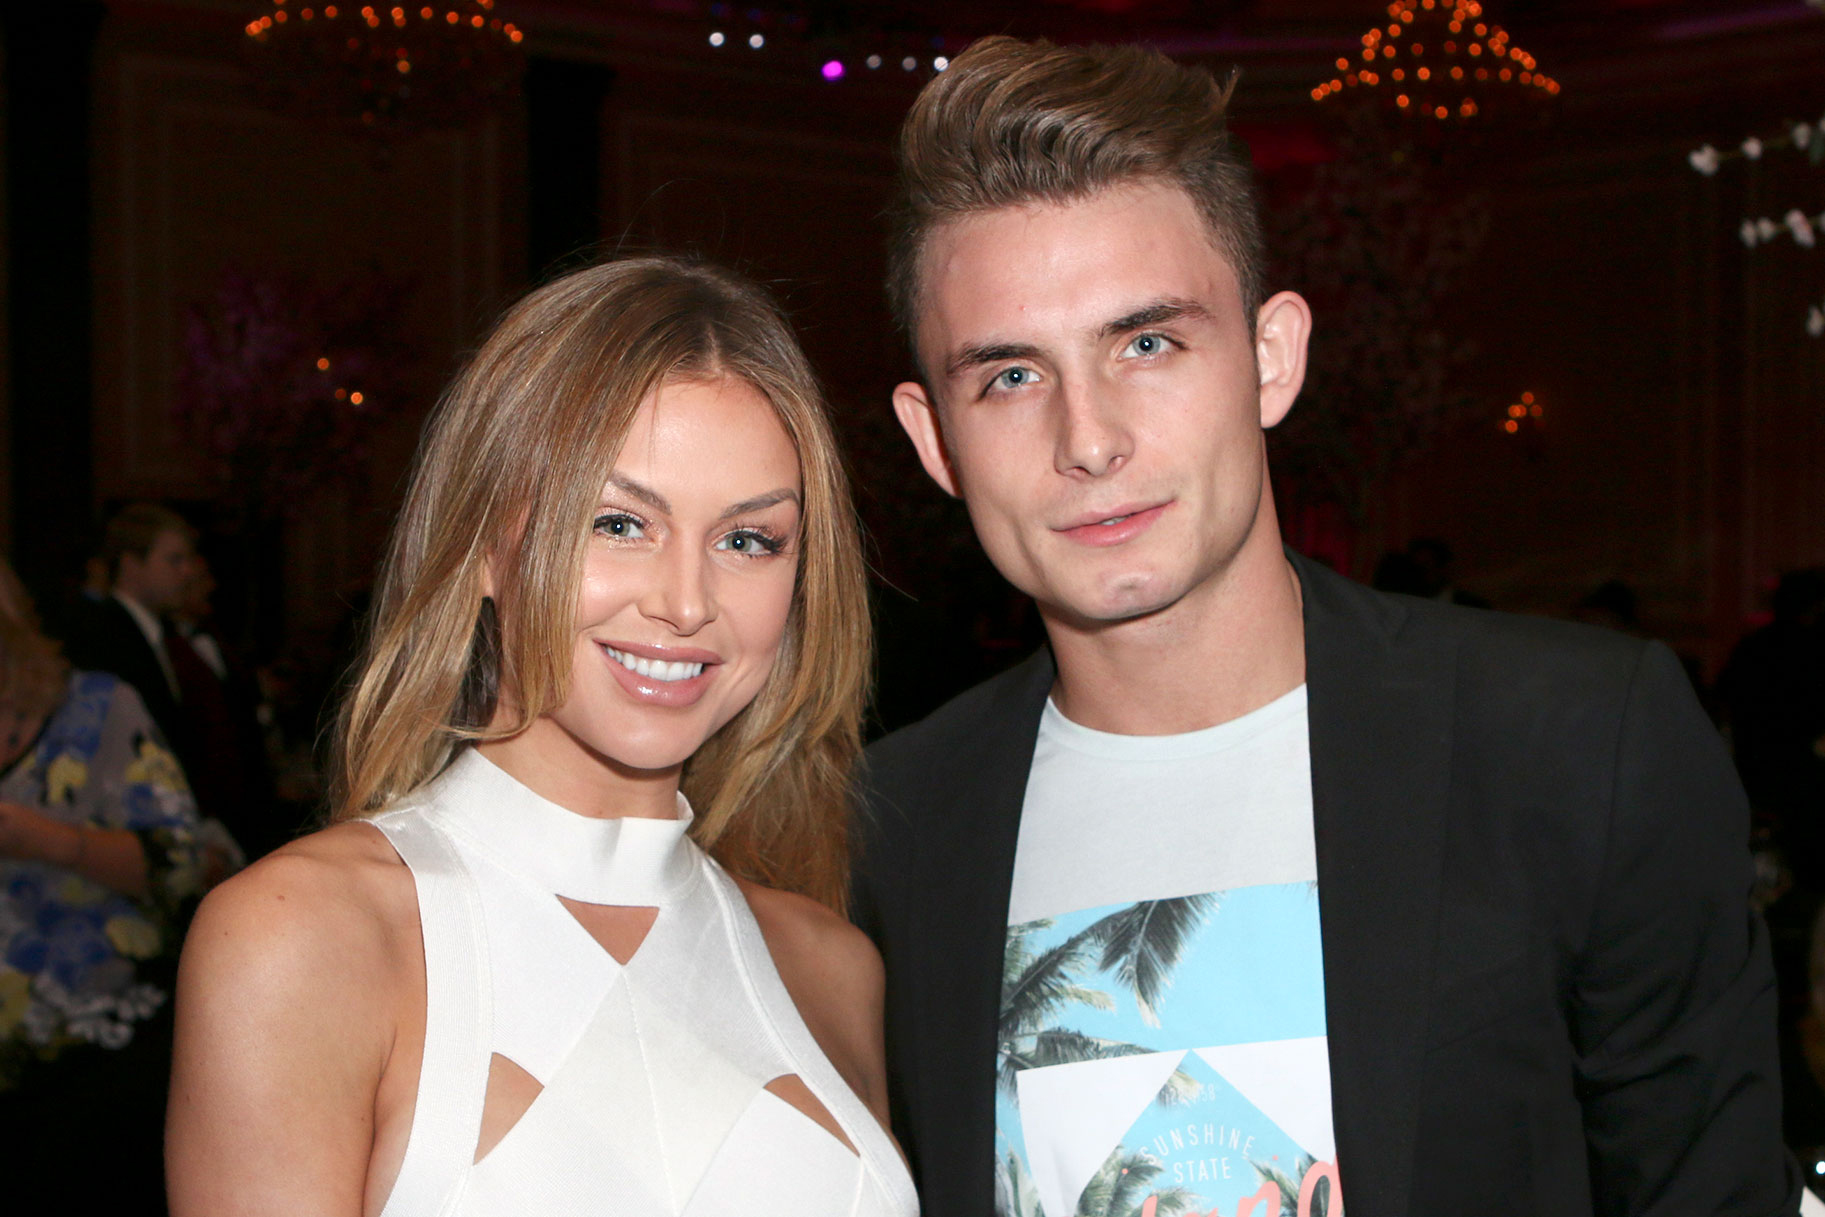 james-kennedy-reveals-he-and-lala-kent-are-working-on-new-music-together-after-ending-their-feud-glad-to-have-my-friend-back